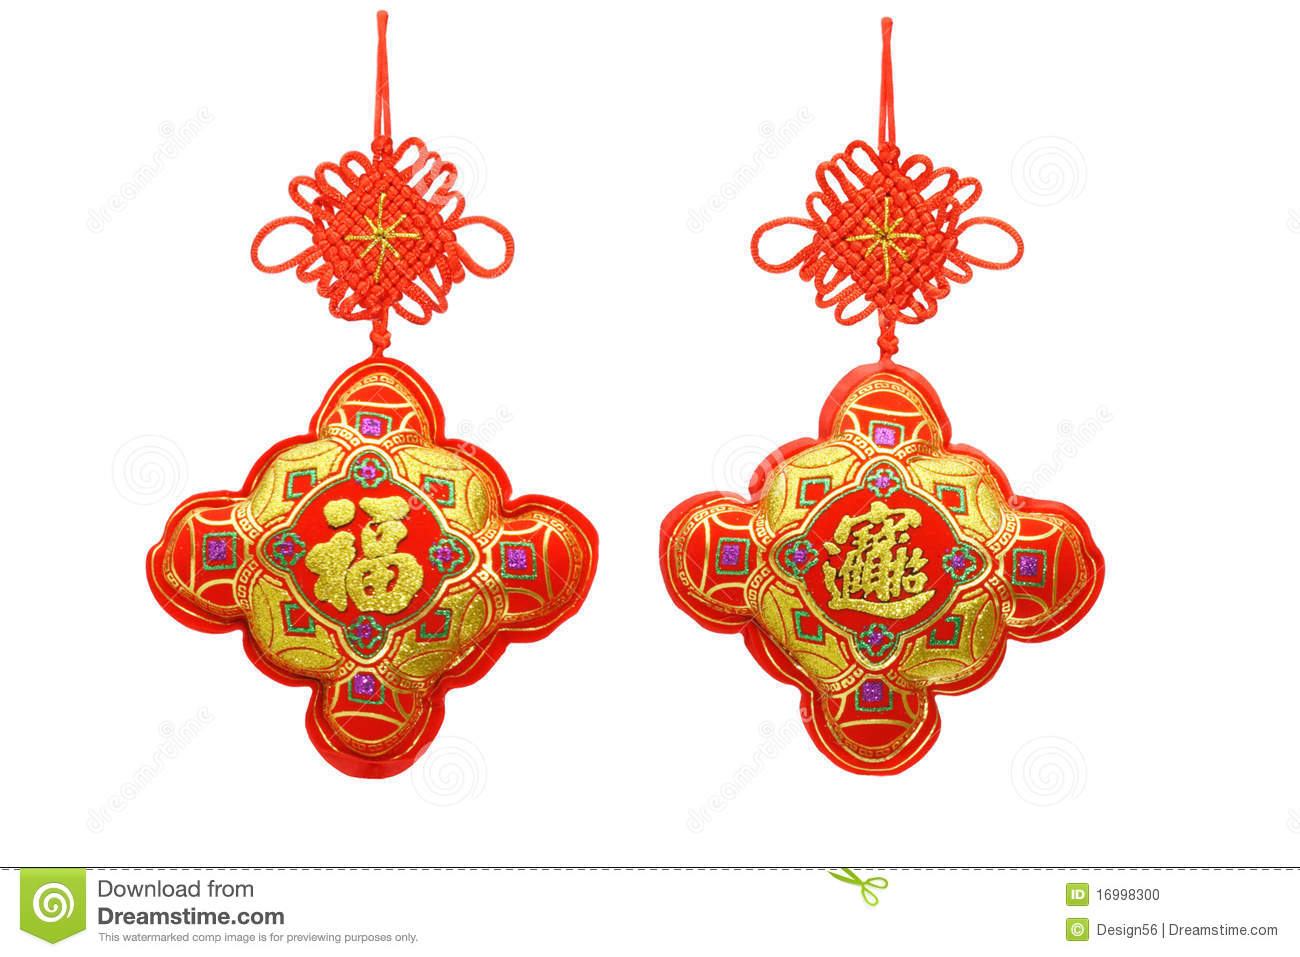 Chinese New Year Ornaments Stock Photo - Image: 16998300